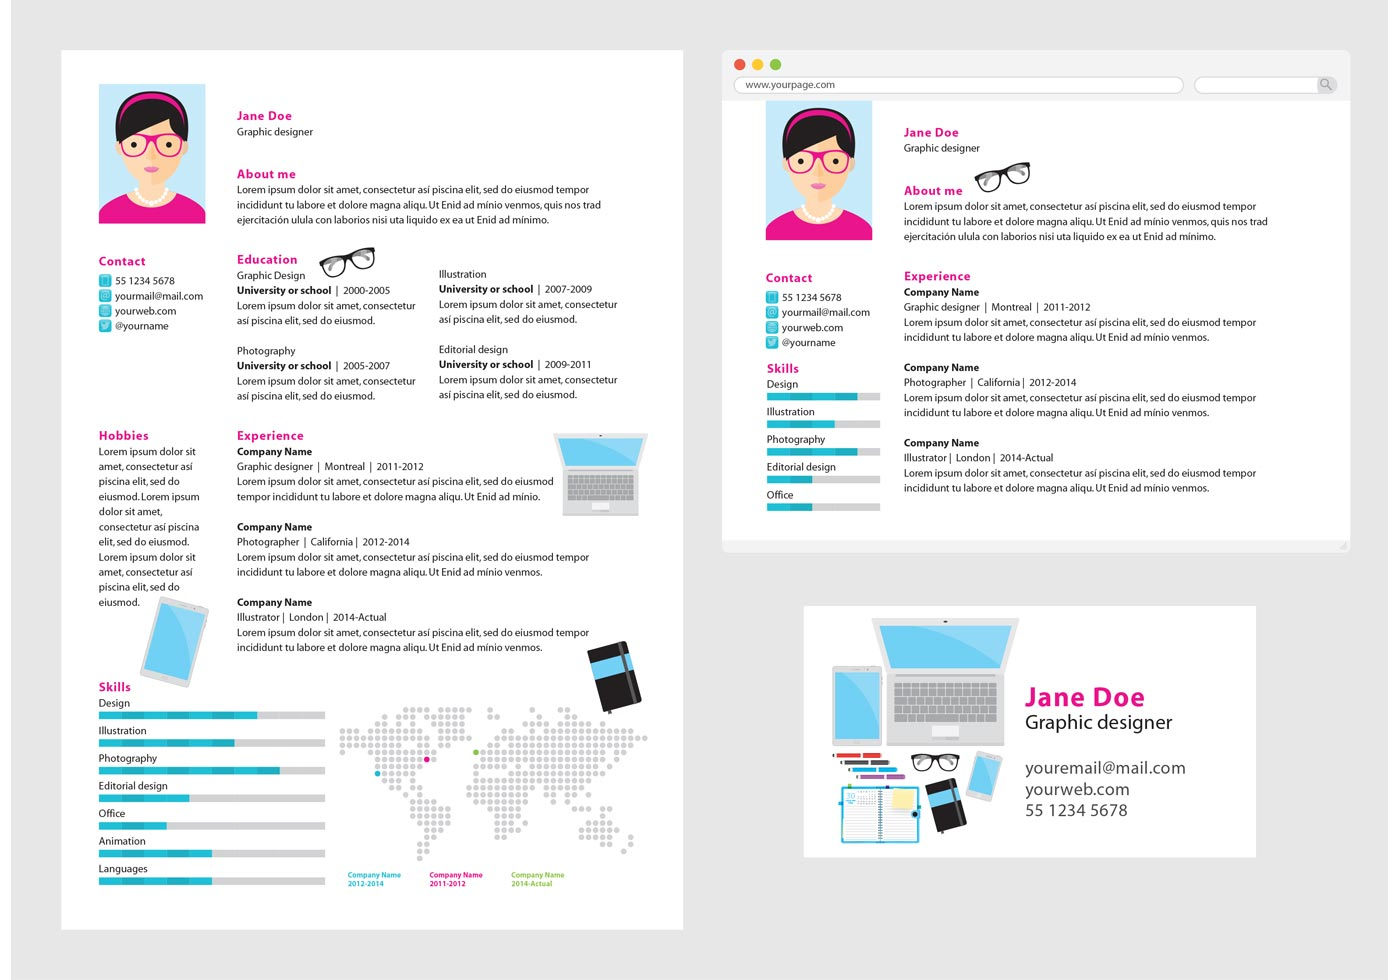 Resumes Online Inc Vector Curriculum Vitae Graphic Designer Download Free